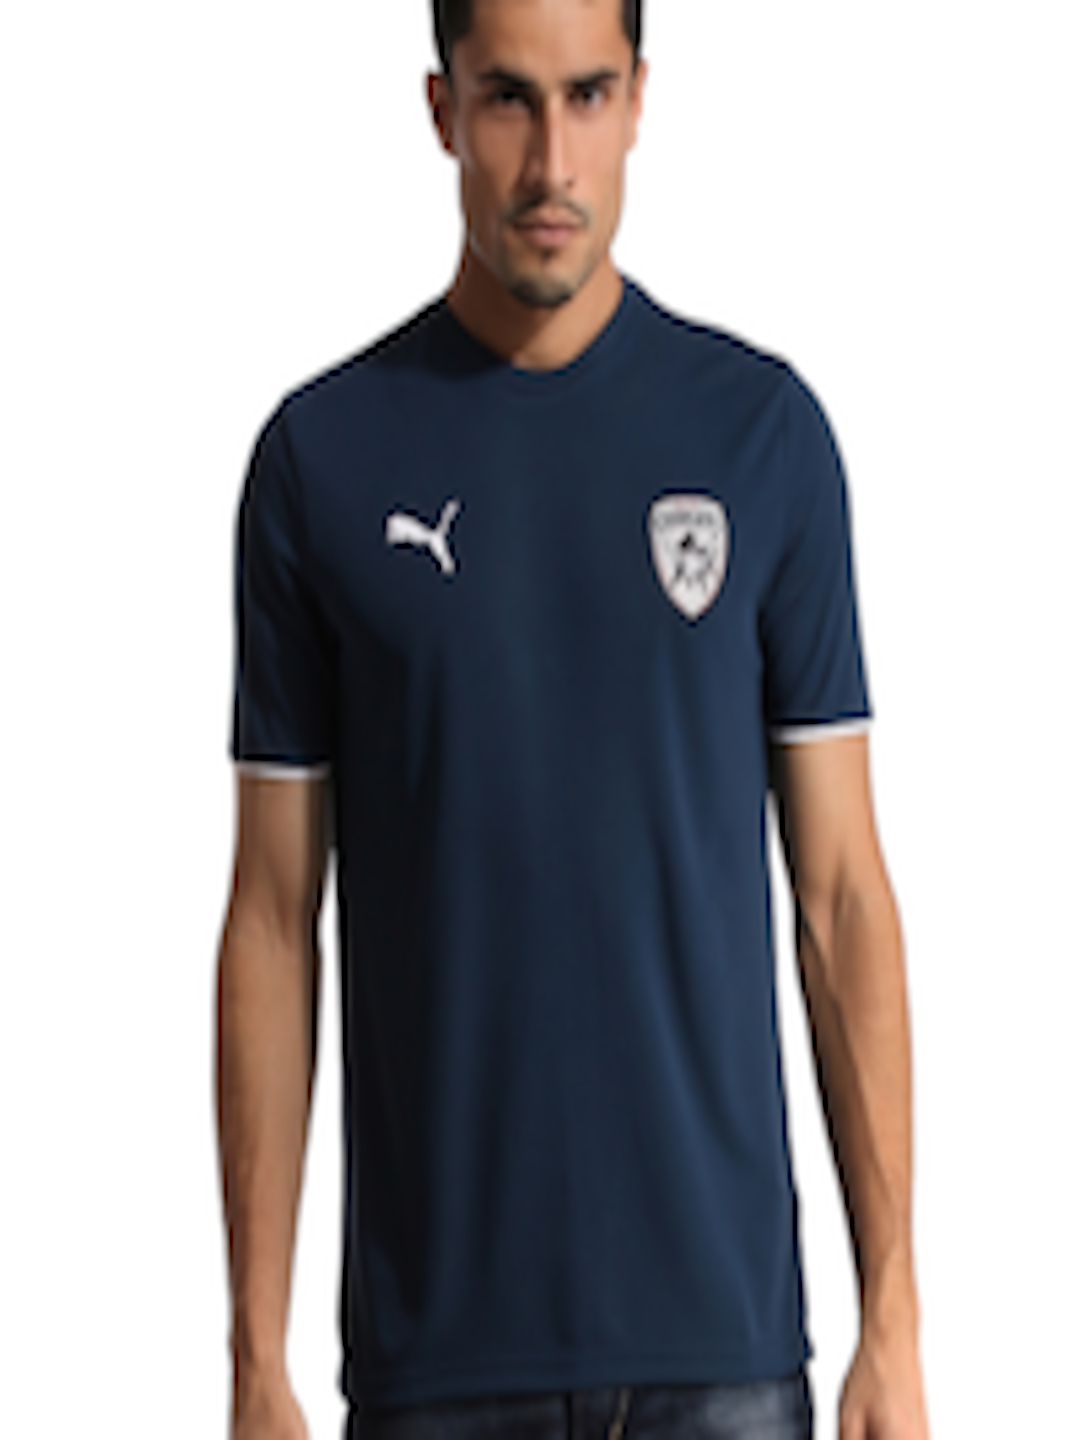 Buy puma deccan chargers men navy blue lookalike jersey tshirts buy puma deccan chargers men navy blue lookalike jersey tshirts for men 3600 myntra biocorpaavc Image collections